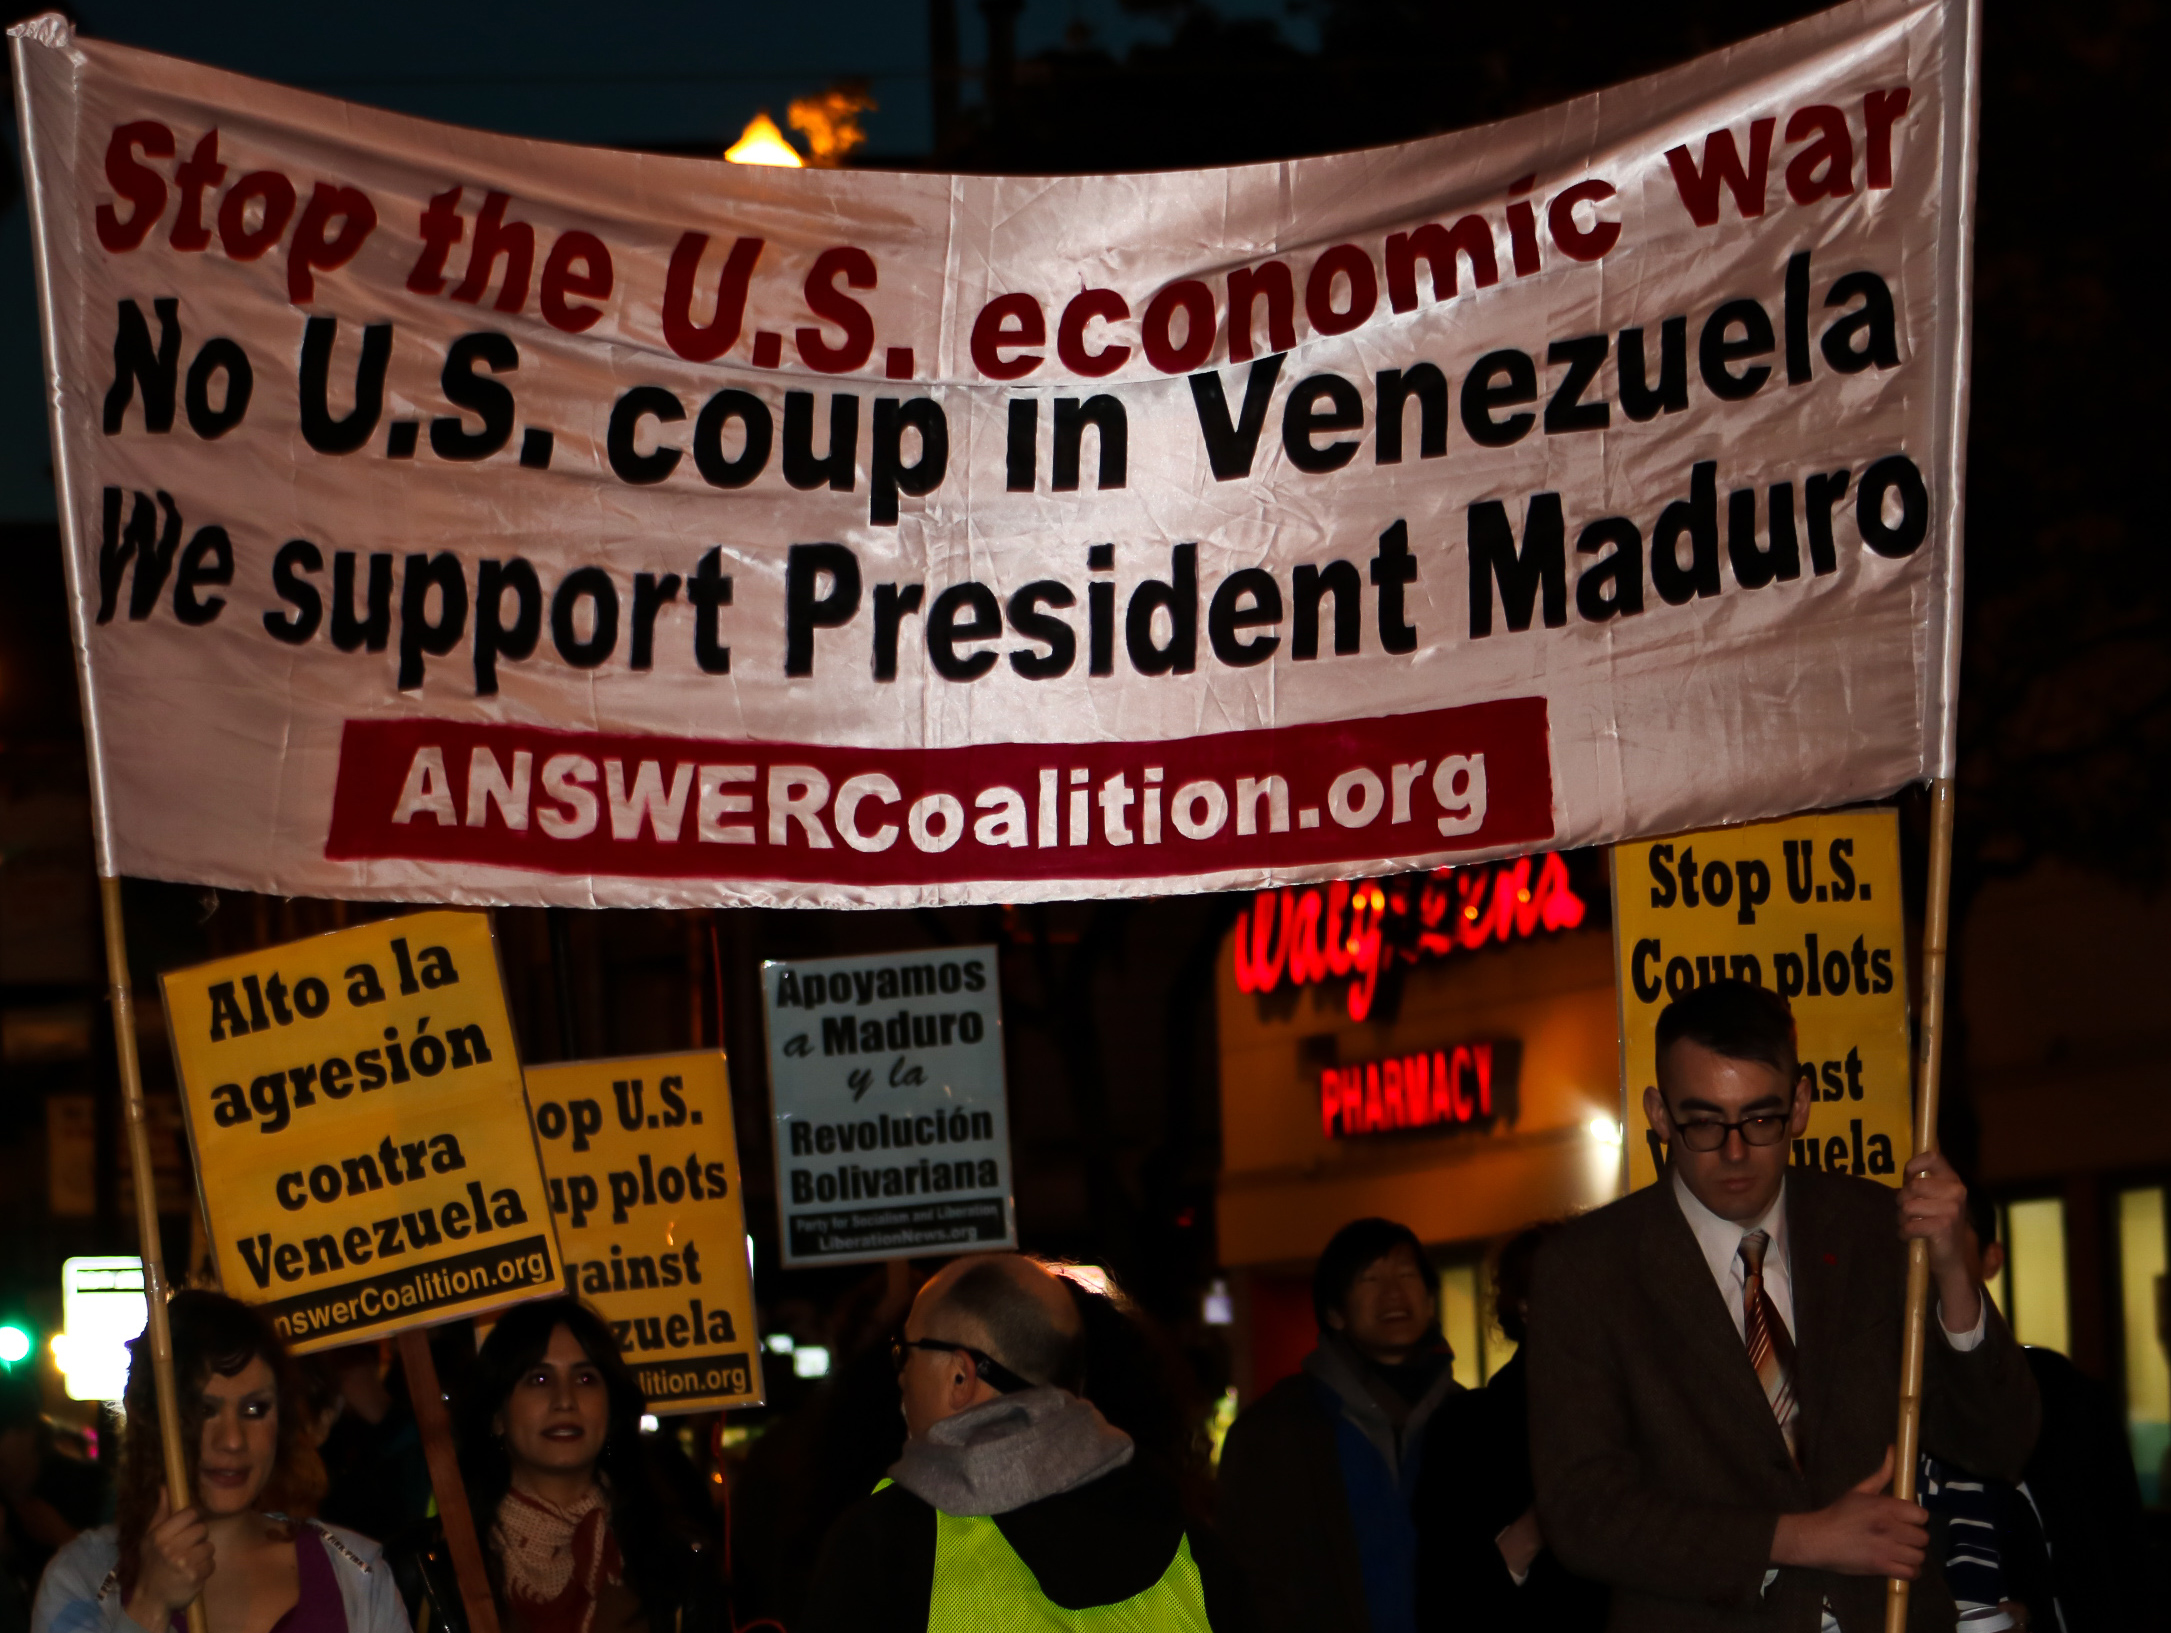 Photo of San Franciscans defy US-orchestrated coup attempt in Venezuela, support President Maduro